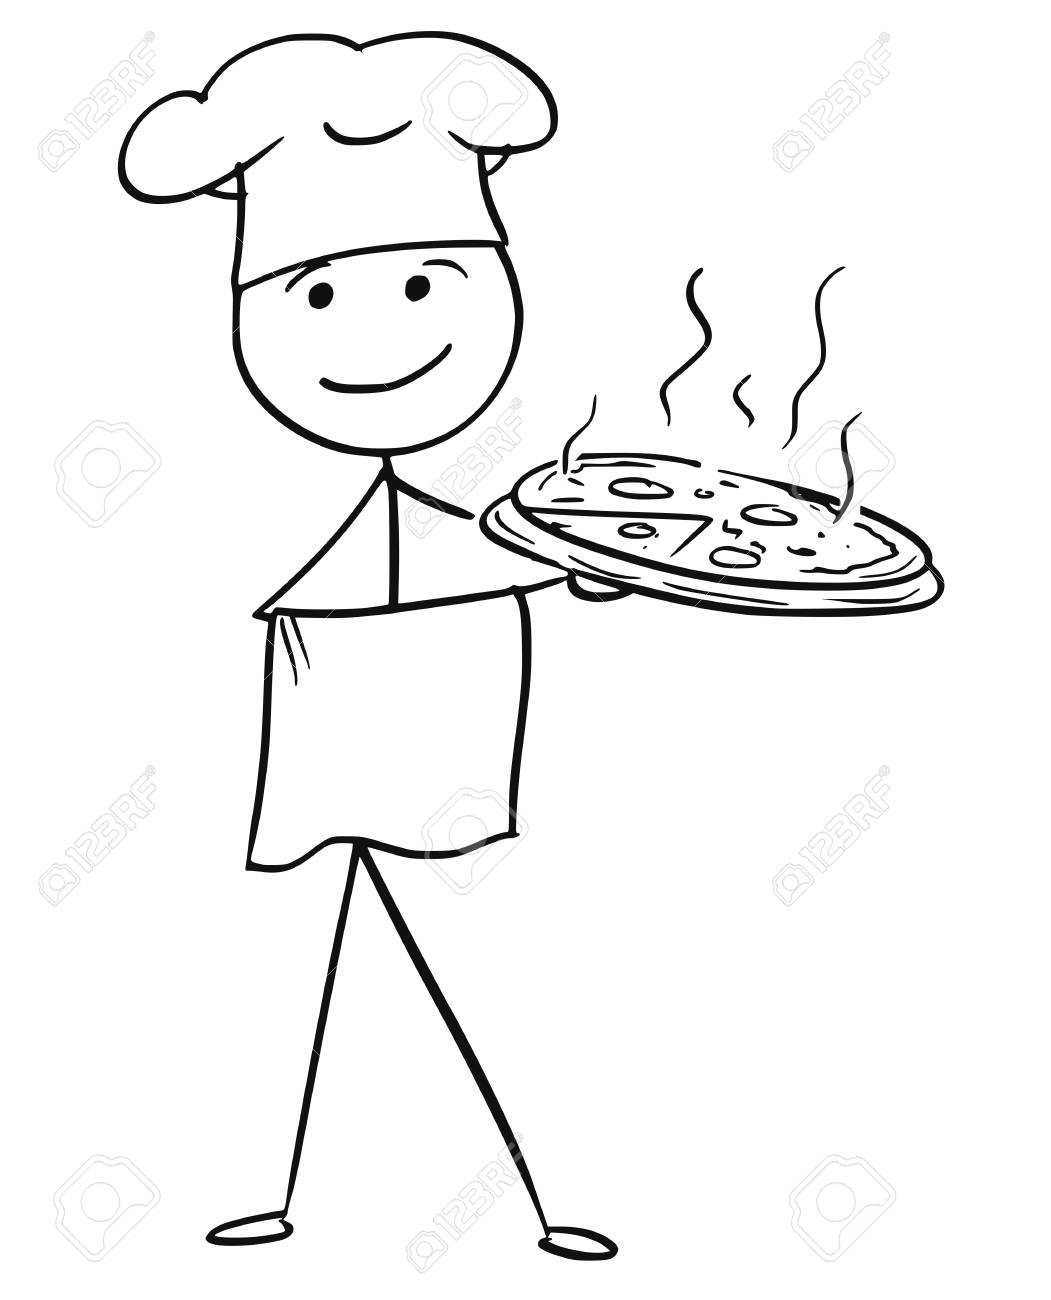 1051x1300 Cartoon Vector Stick Man Stickman Drawing Of Male Cook Chef